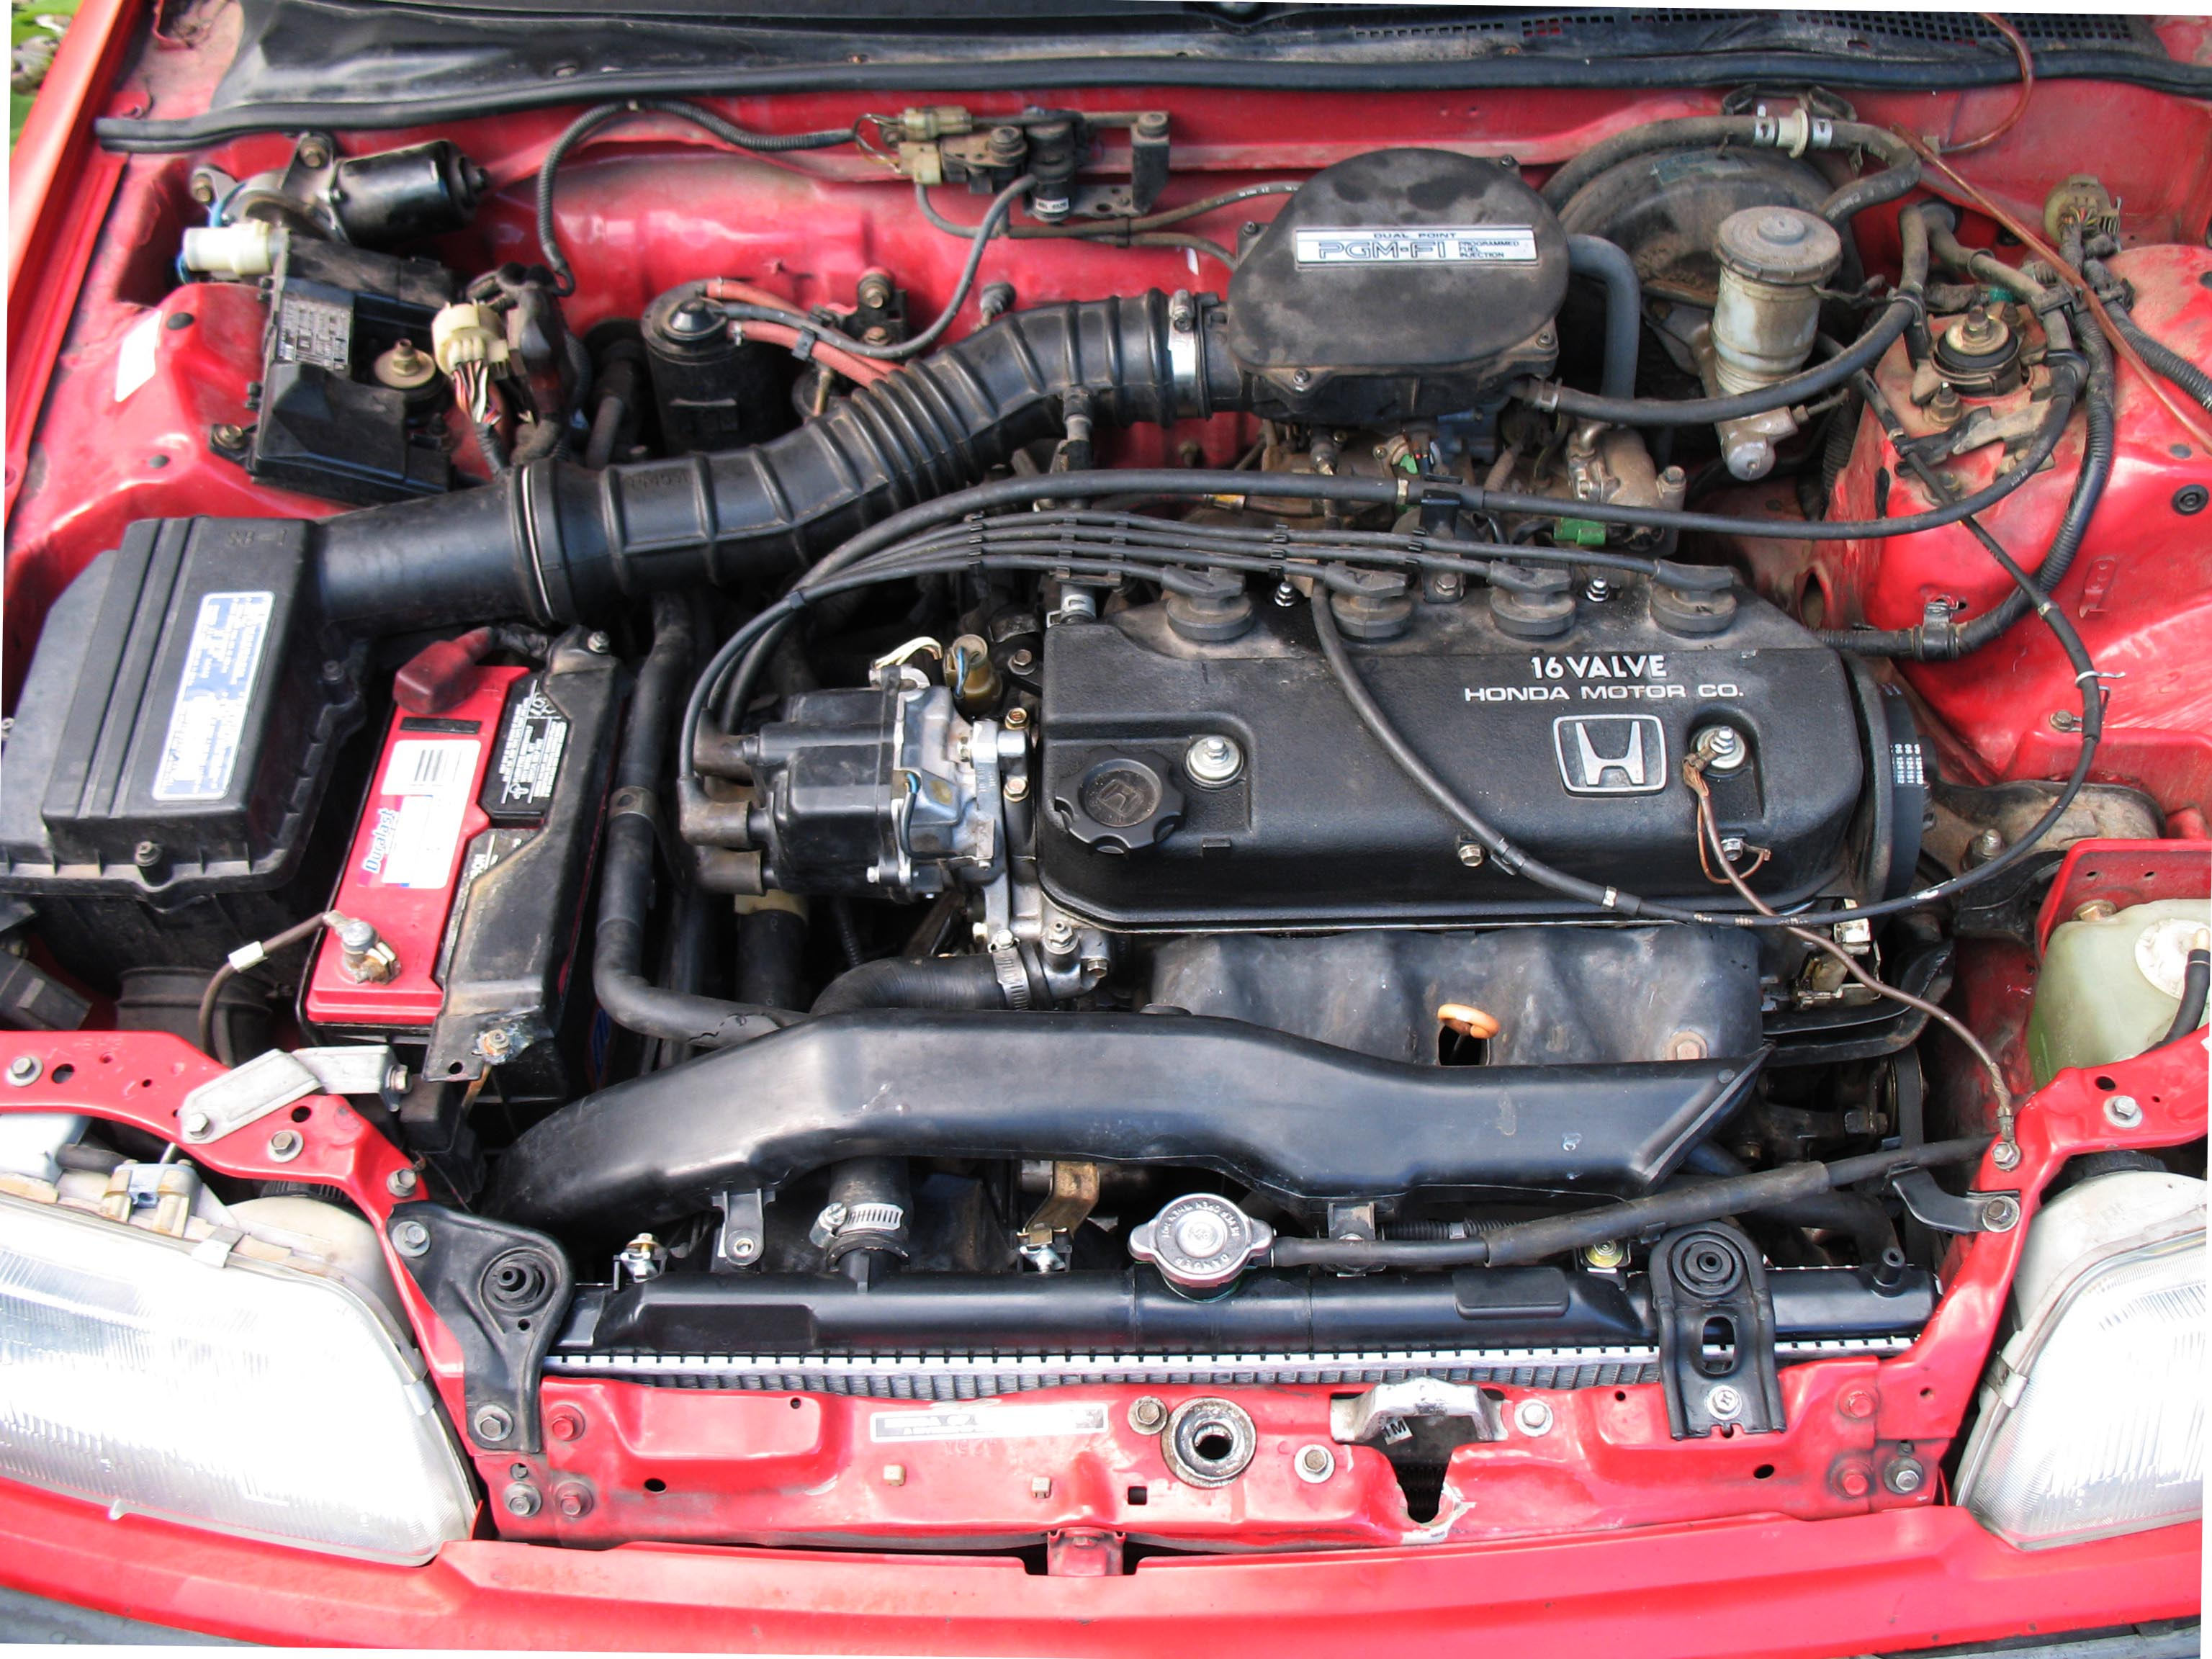 With Honda Crx Wiring Diagram Also 1991 Honda Crx Wiring Diagram